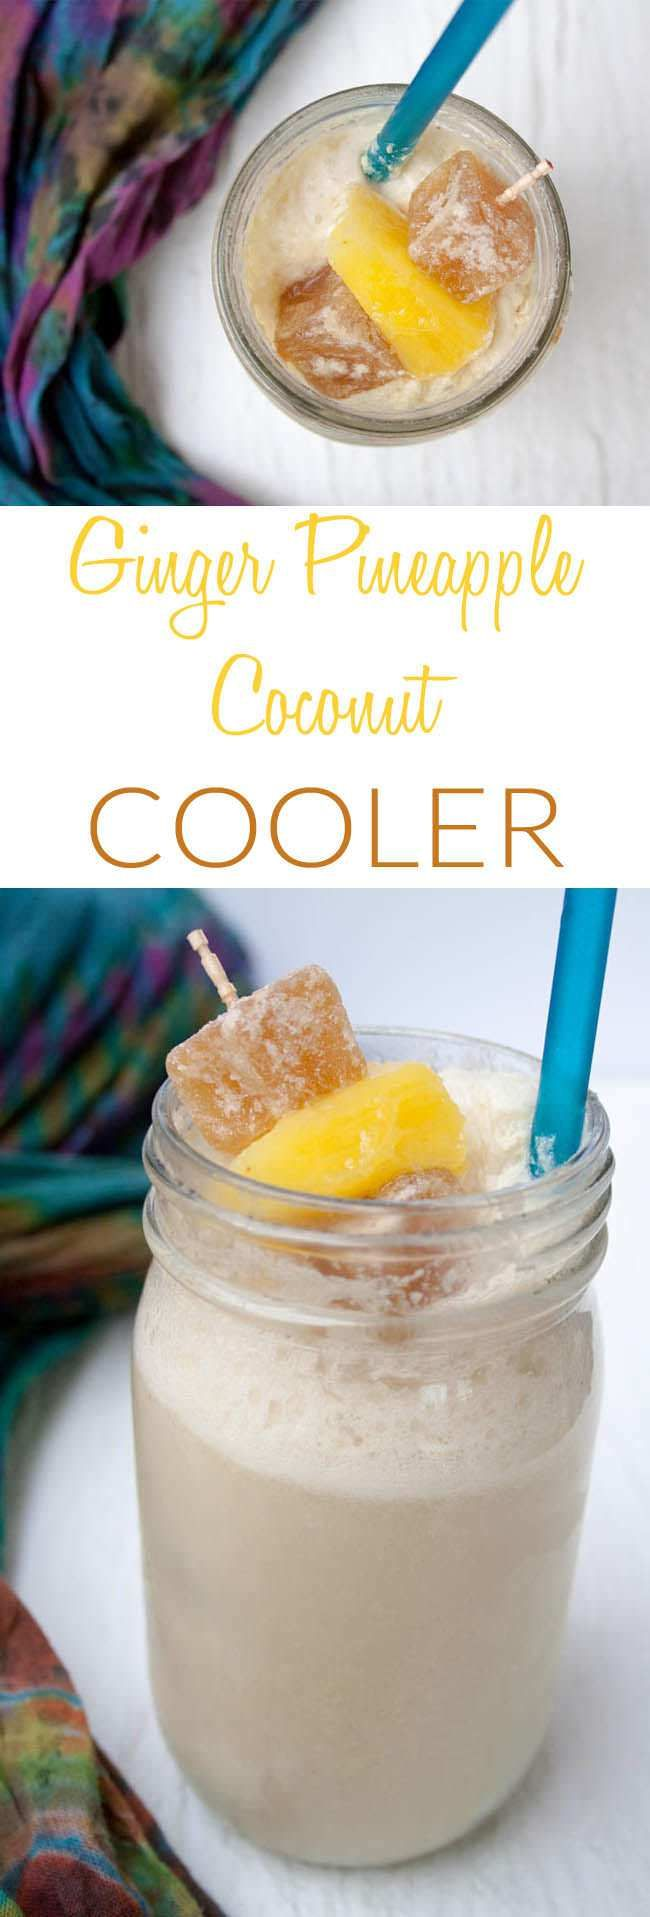 Ginger Pineapple Coconut Cooler (vegan, gluten free) - Let this refreshing fizzy drink with kombucha whisk you away to the tropics!